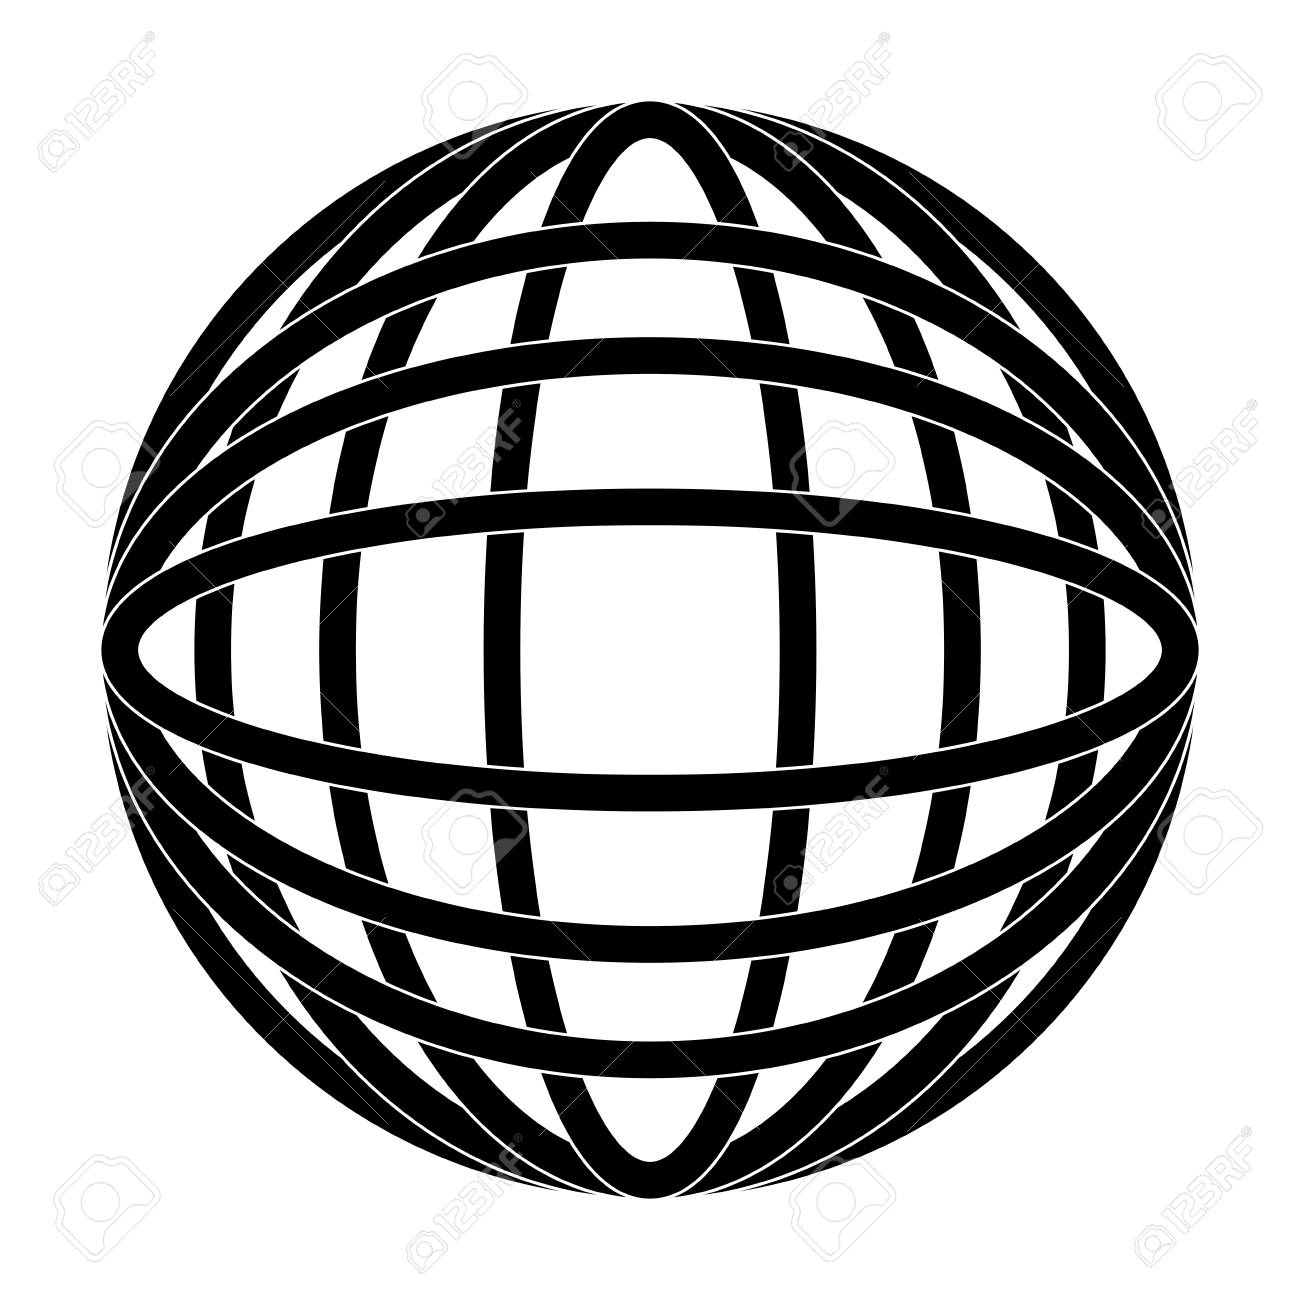 hight resolution of earth globe diagram icon image vector illustration design black and white stock vector 92184818